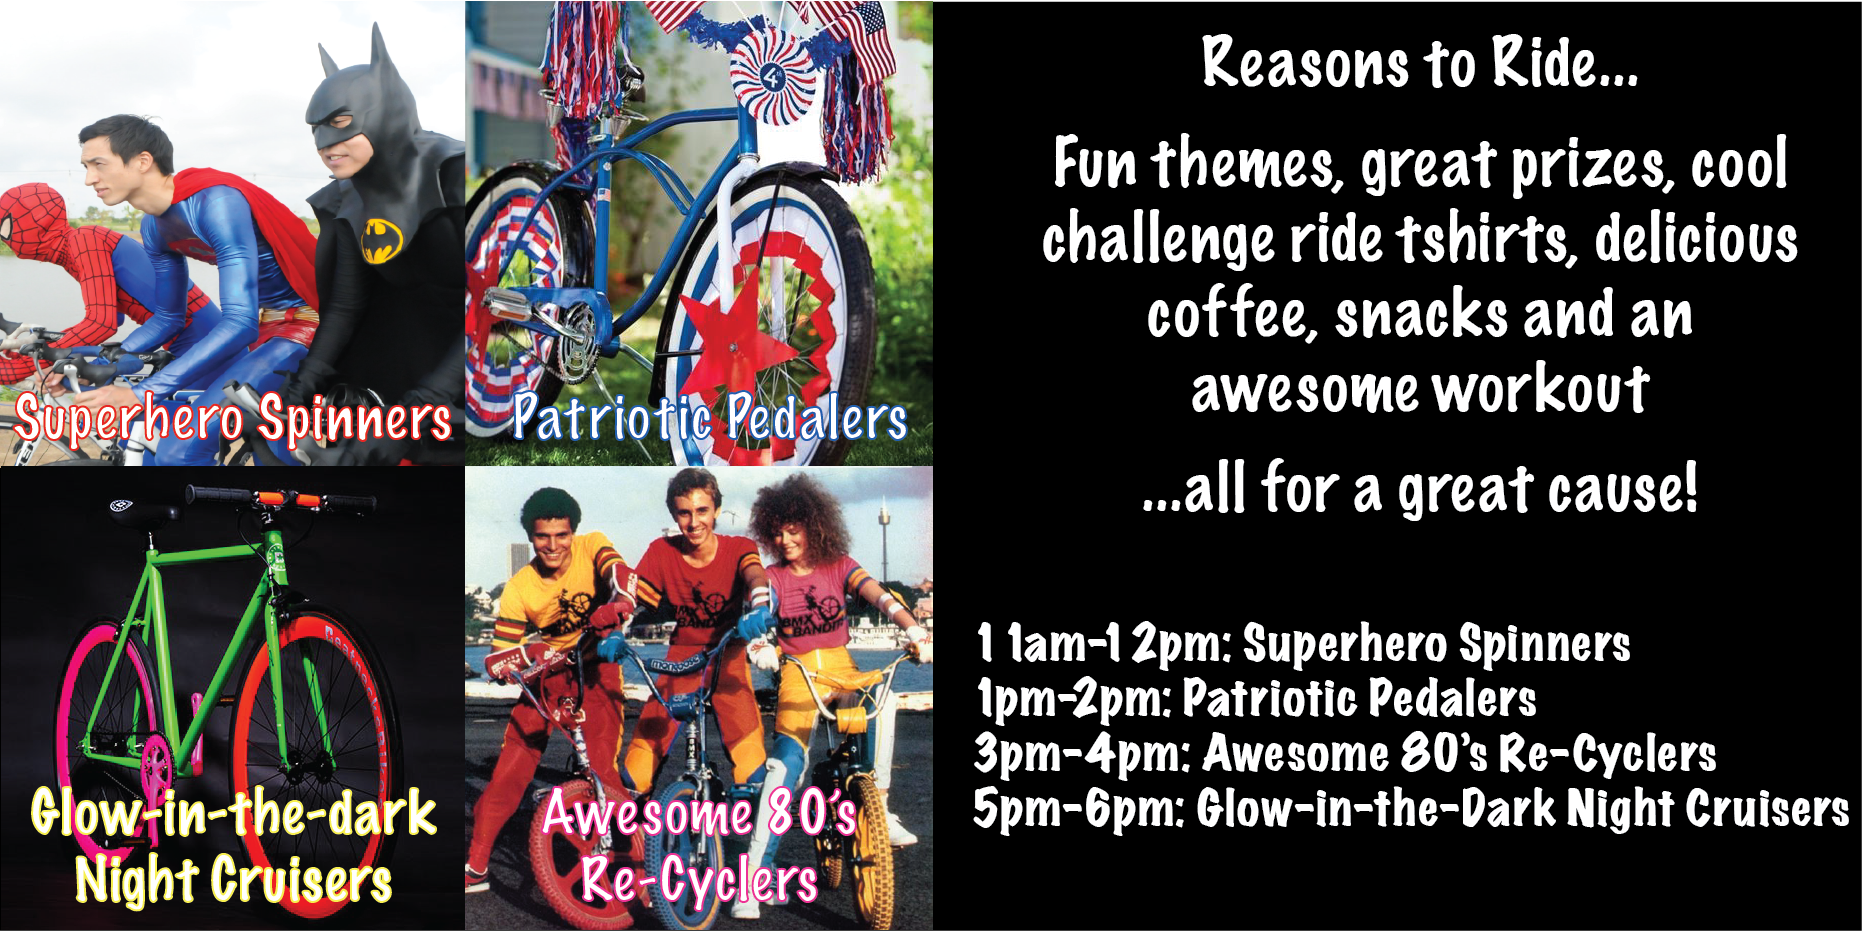 Reasons to Ride...  Fun themes, great prizes, cool  challenge ride tshirts, delicious coffee, snacks and an  awesome workout  ...all for a great cause!  11am-12pm: Superhero Spinners 1pm-2pm: Patriotic Pedalers 3pm-4pm: Awesome 80's Re-Cyclers 5pm-6pm: Glow-in-the-Dark Night Cruisers